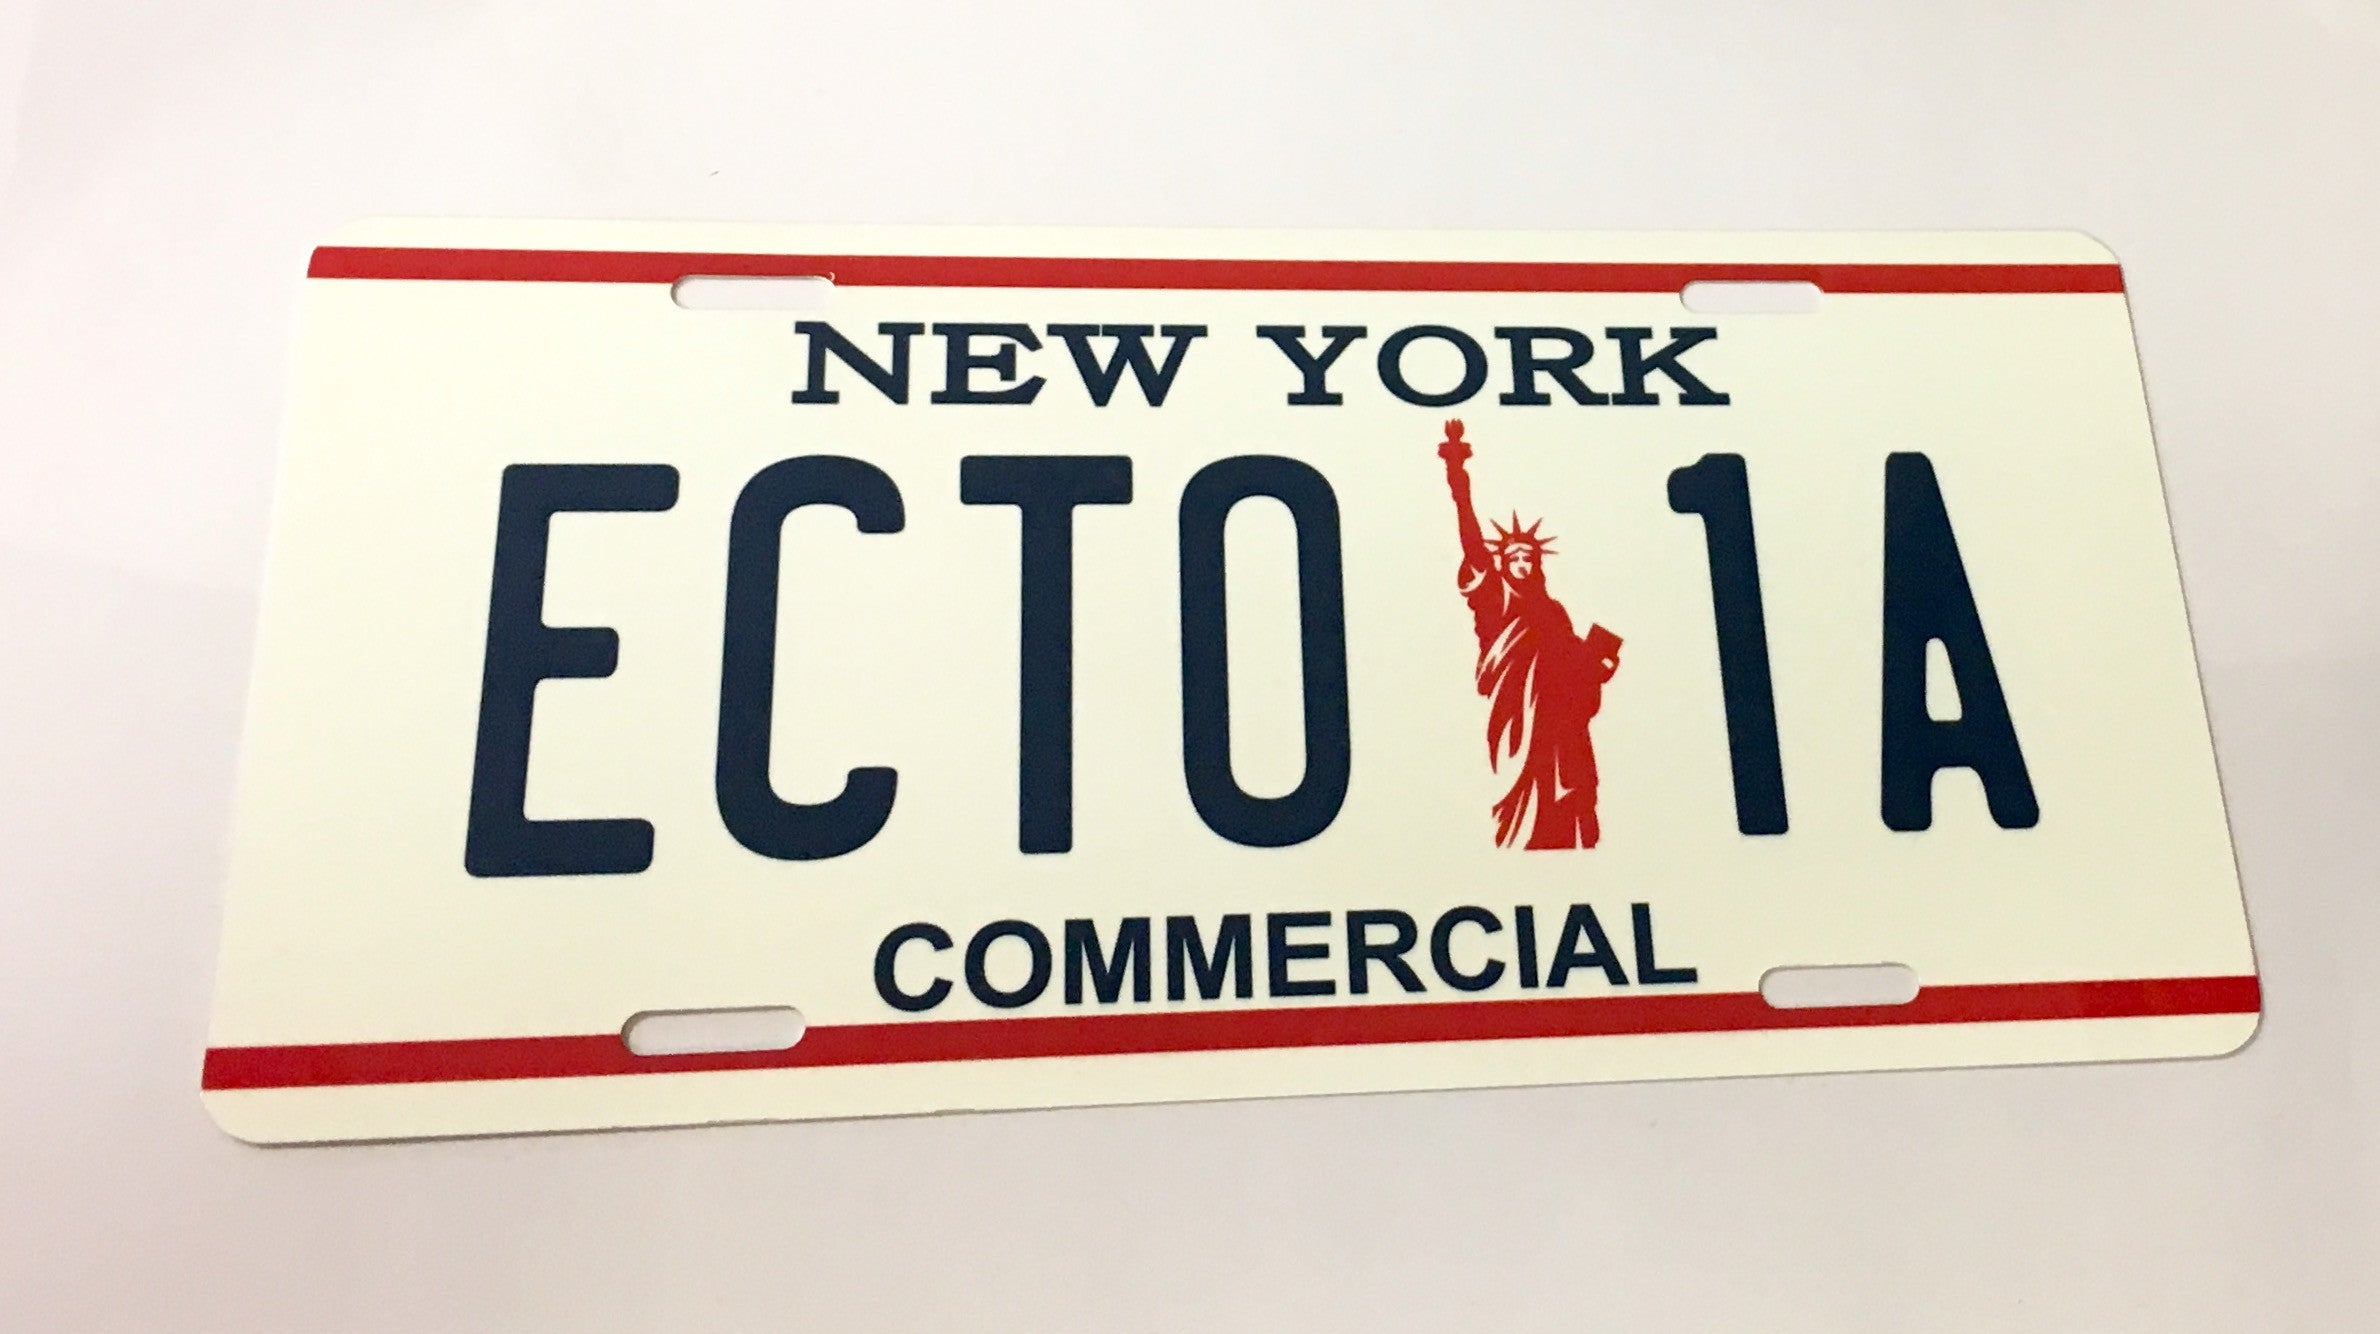 ECTO-1A - Ghostbusters License Plate